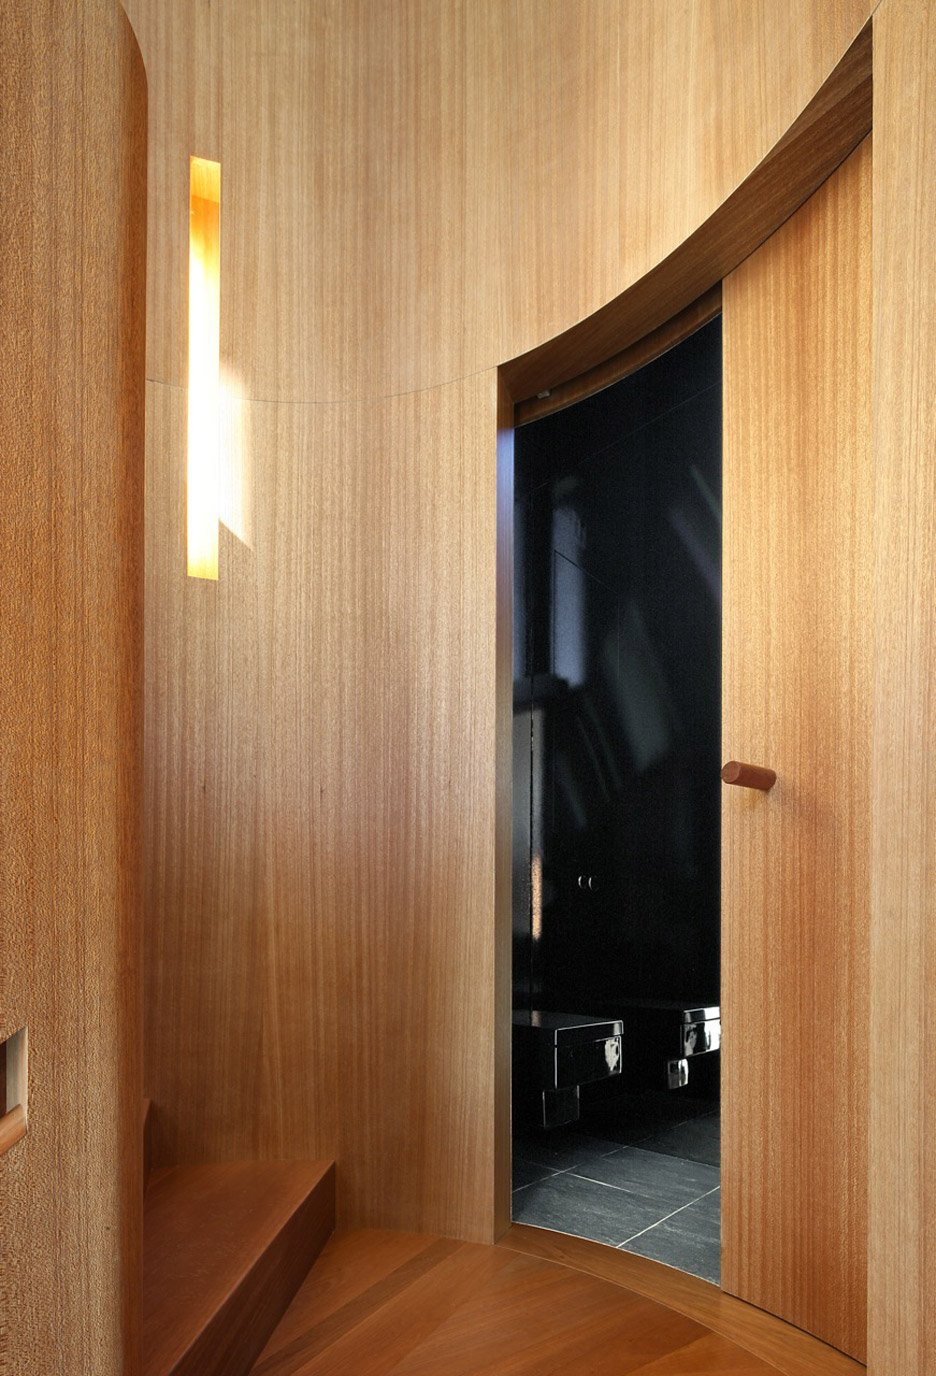 House flagey interior design penthouse brussels b ild dezeen 936 8.jpg